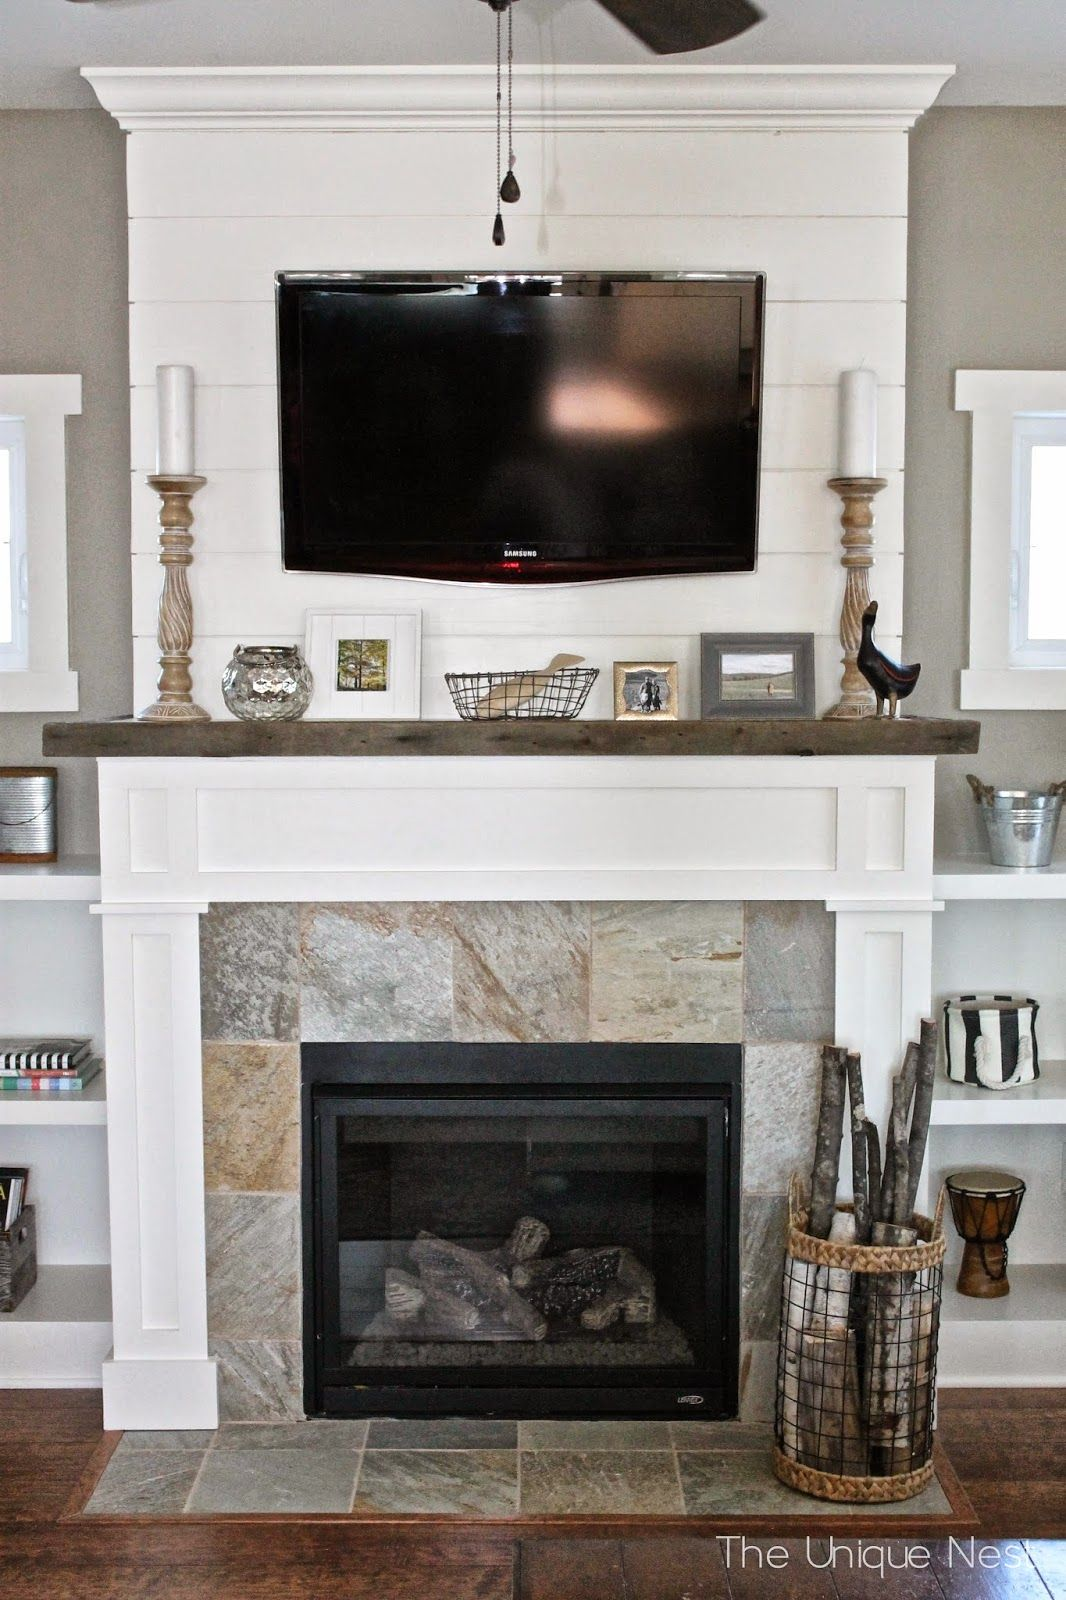 My fireplace gets a custom makeover shiplap style it seems